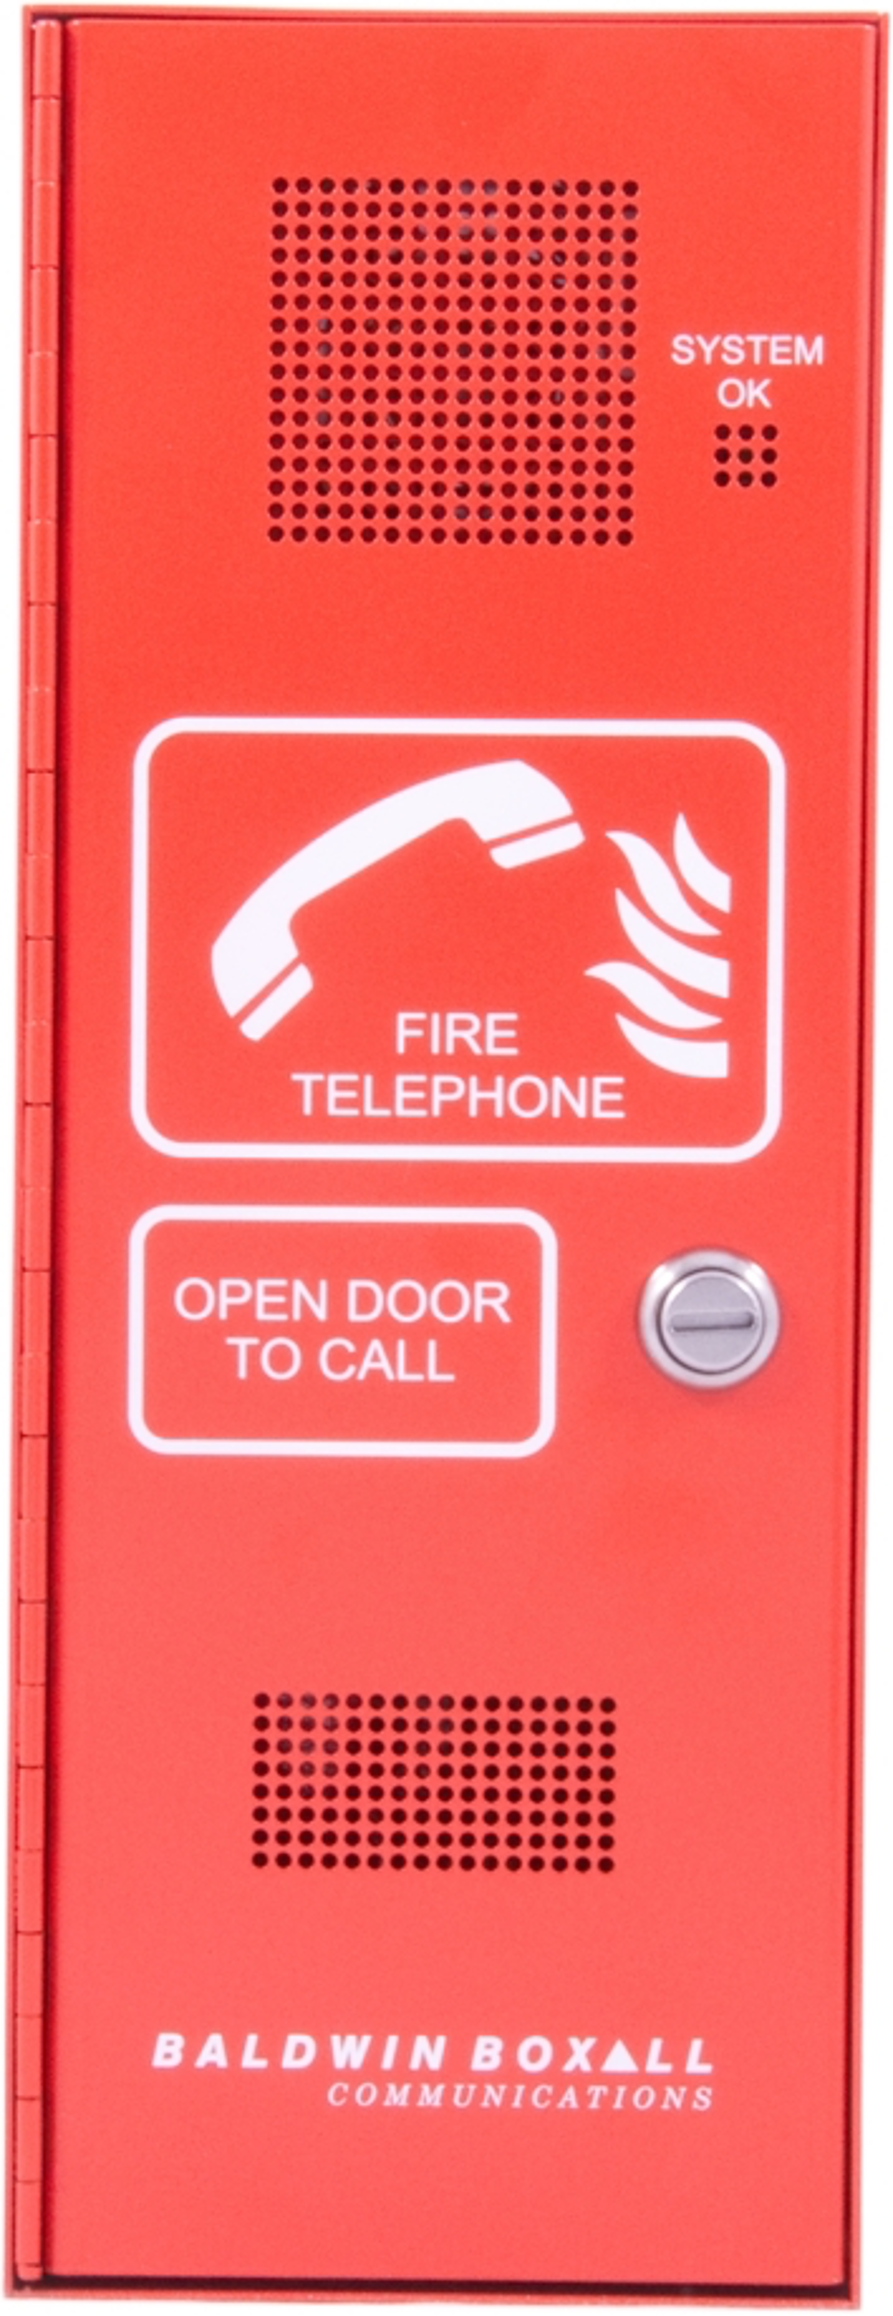 Baldwin Boxall OmniCare BVOCFLB Type-A Fire Telephone with Locking Door and Beacon Red